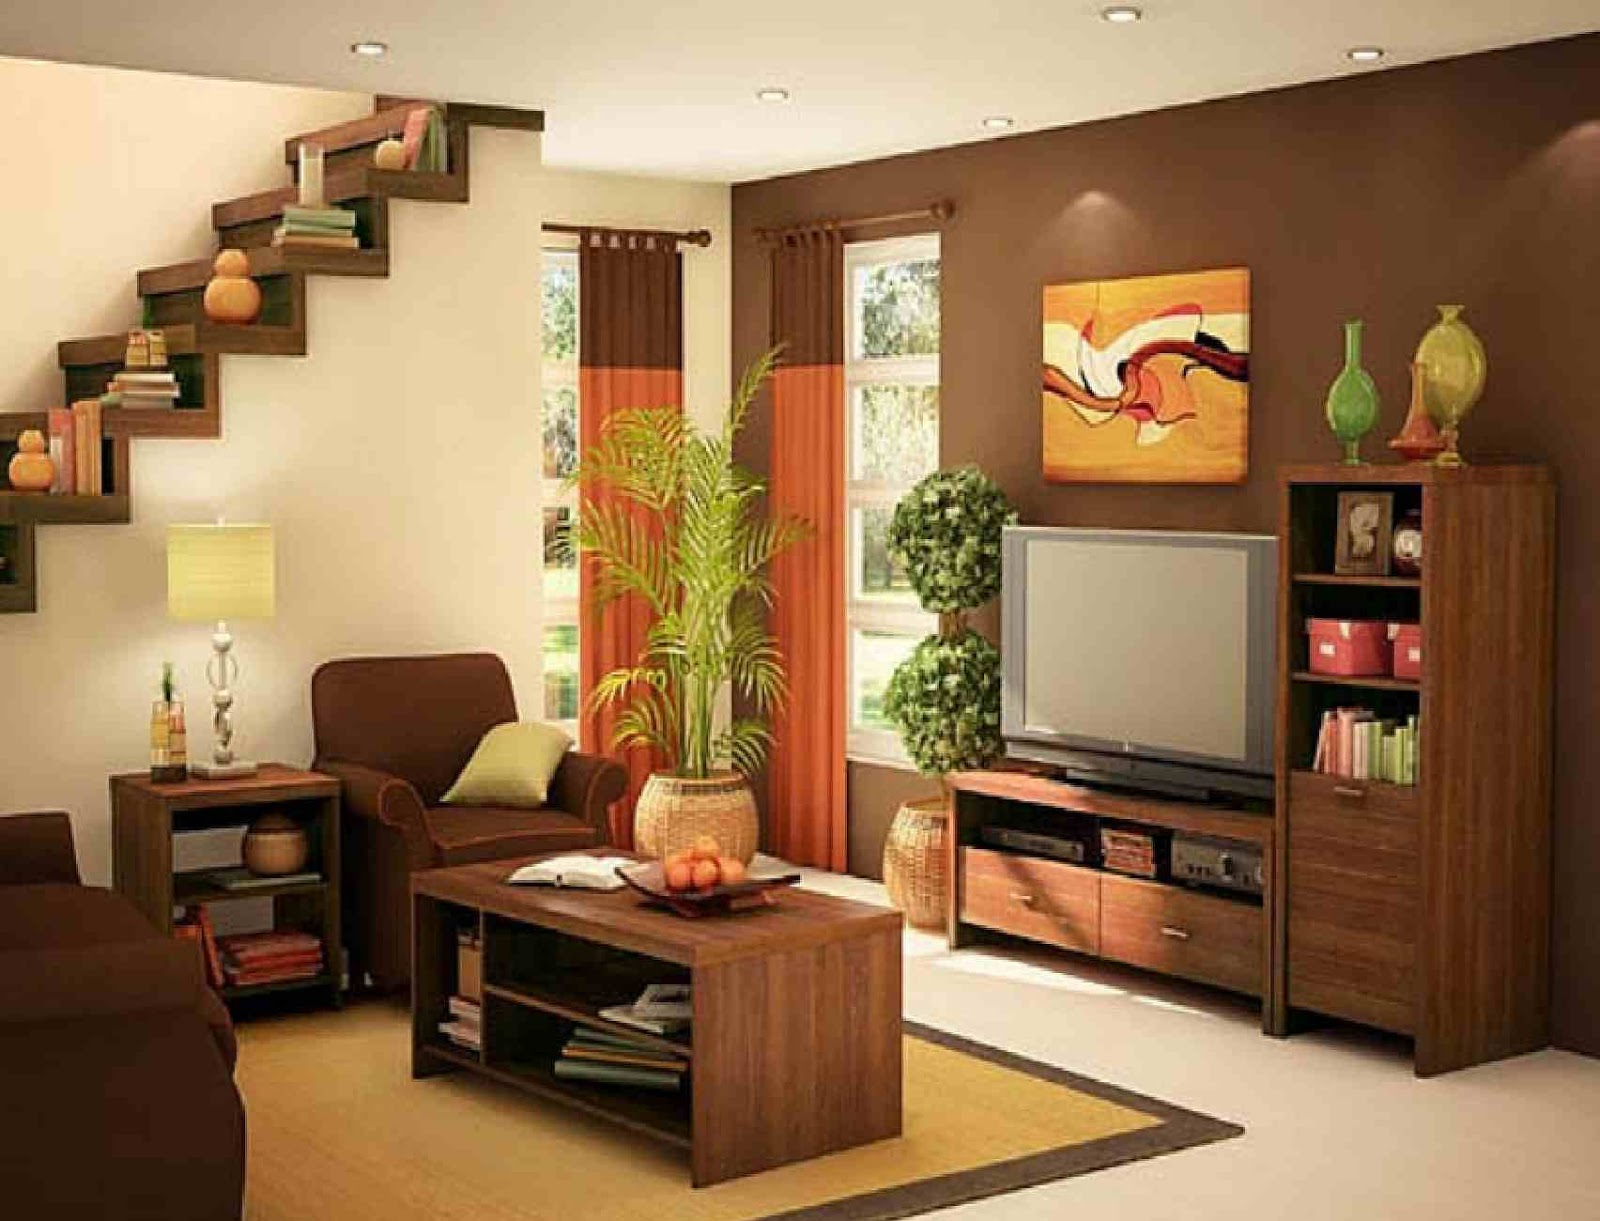 Home interior designs simple living room designs for Home design living room